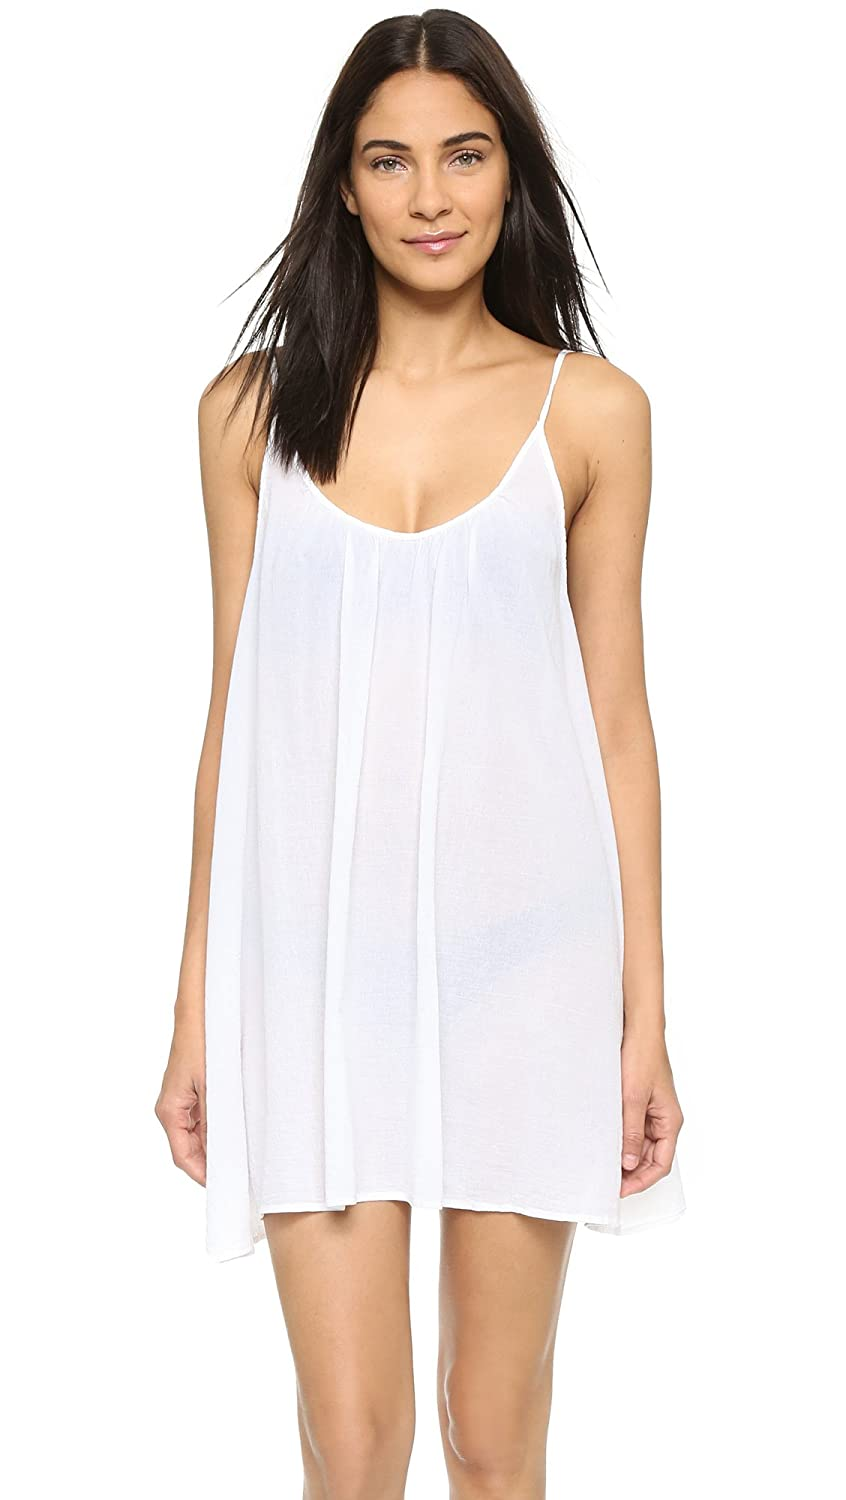 9seed Women's St. Barts Cover Up